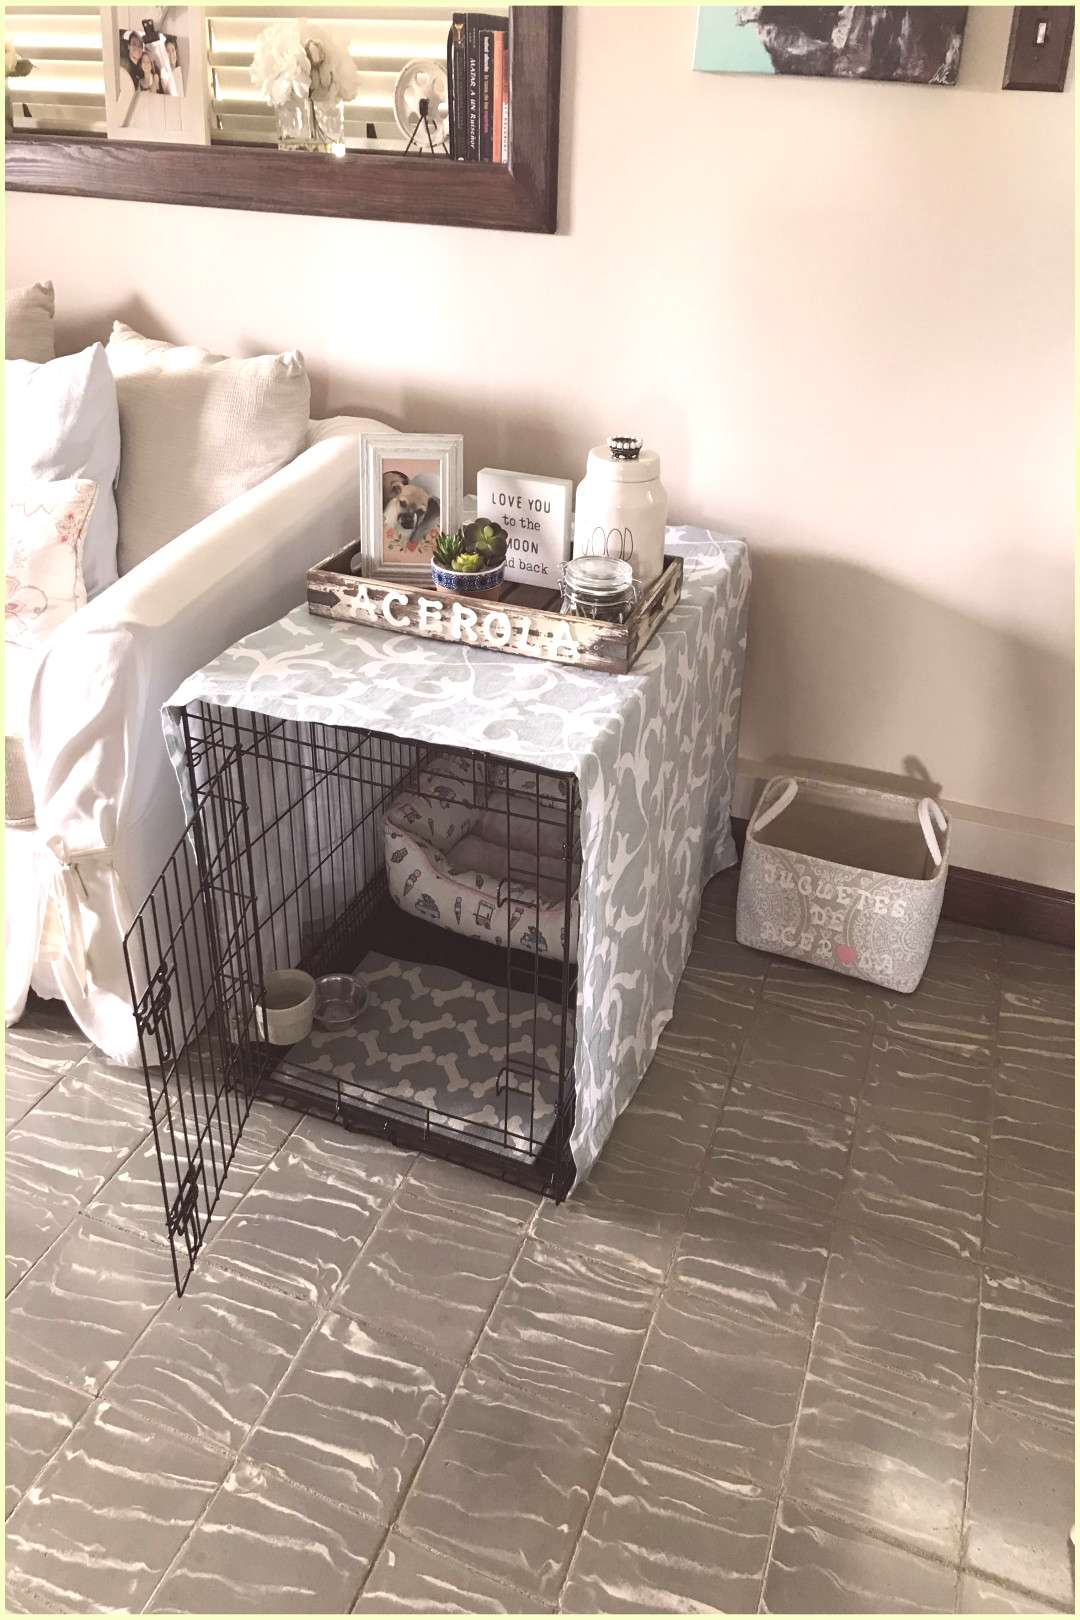 Which Type Of Crate Is Best For Your Dog?   Dog Crate Ideas Bedrooms   Dog Crate Sizes By Bre... No